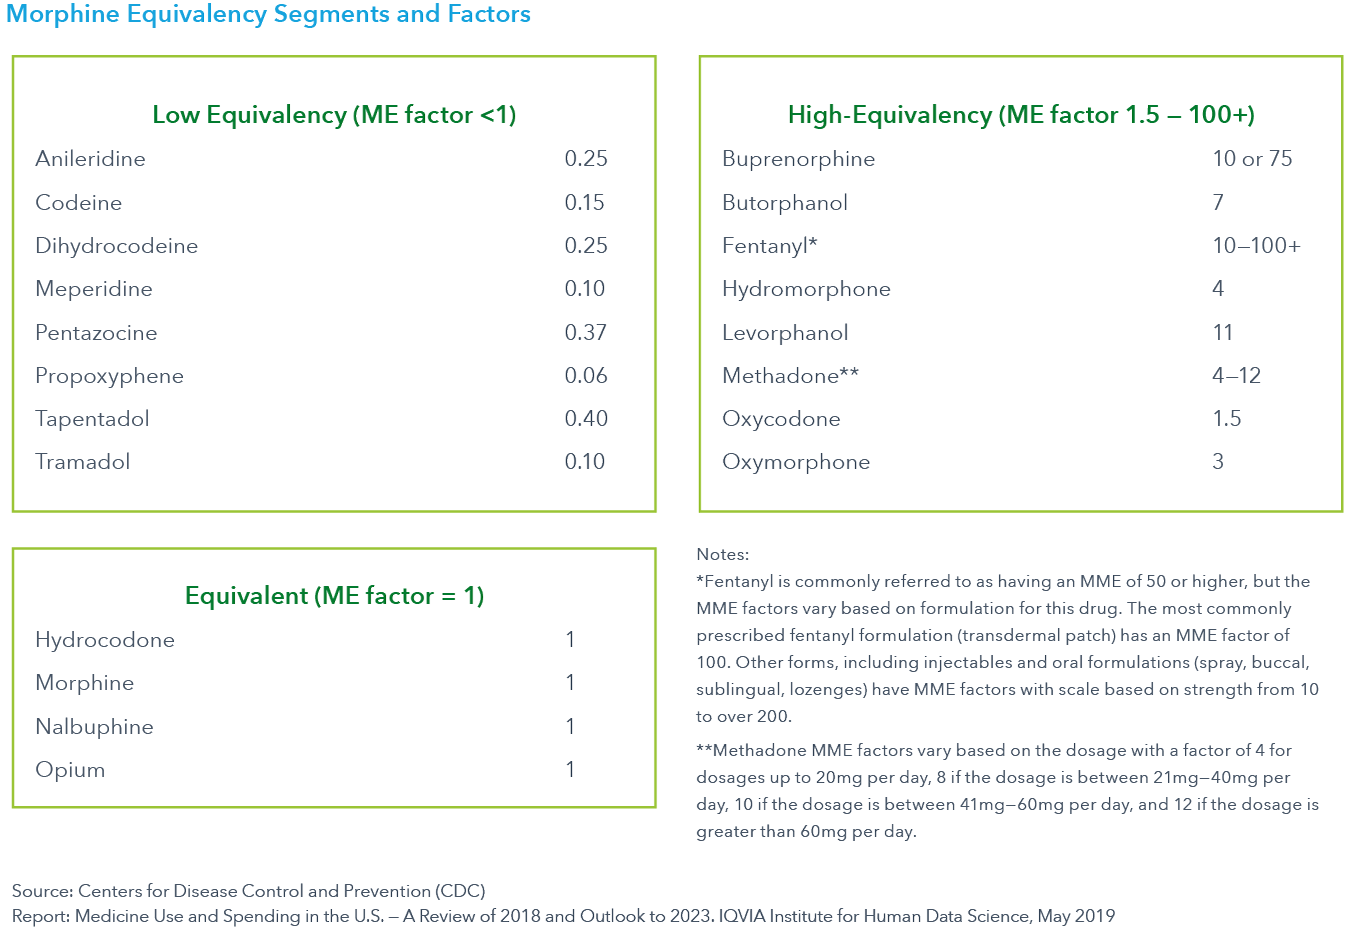 Chart 37 Morphine Equivalency Segments and Factors